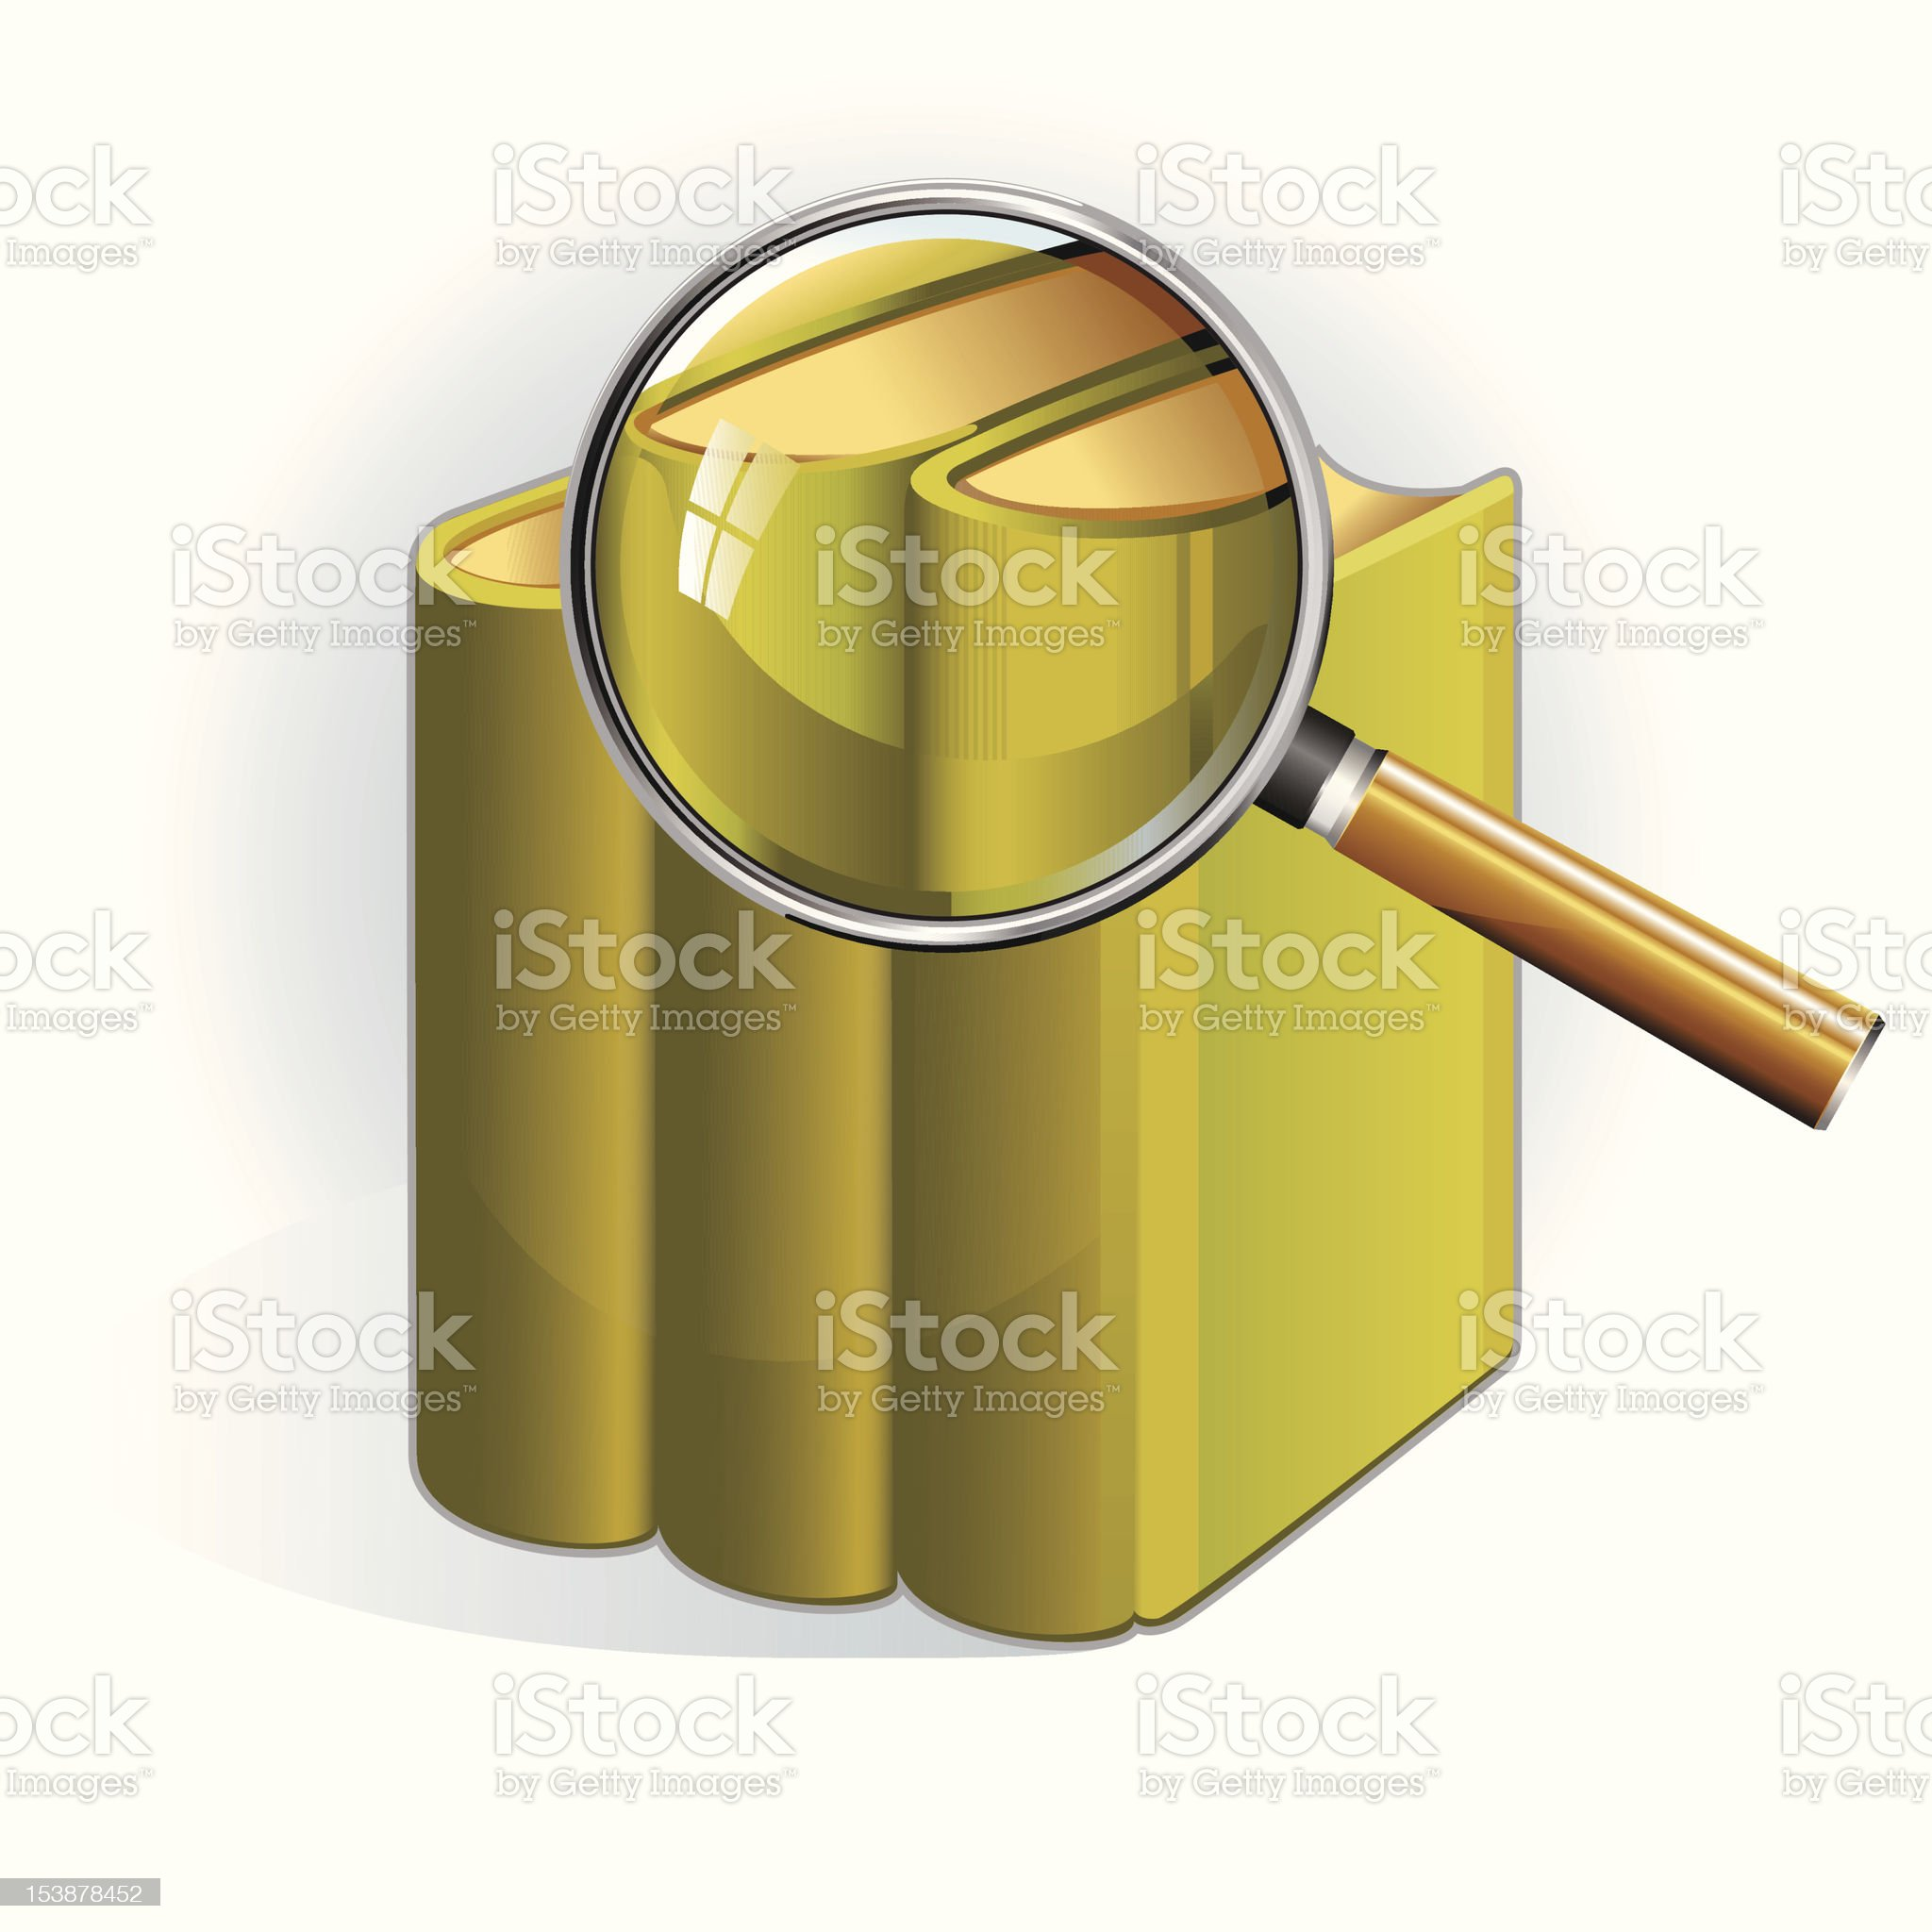 Book Search. Books under the magnifying glass. royalty-free stock vector art